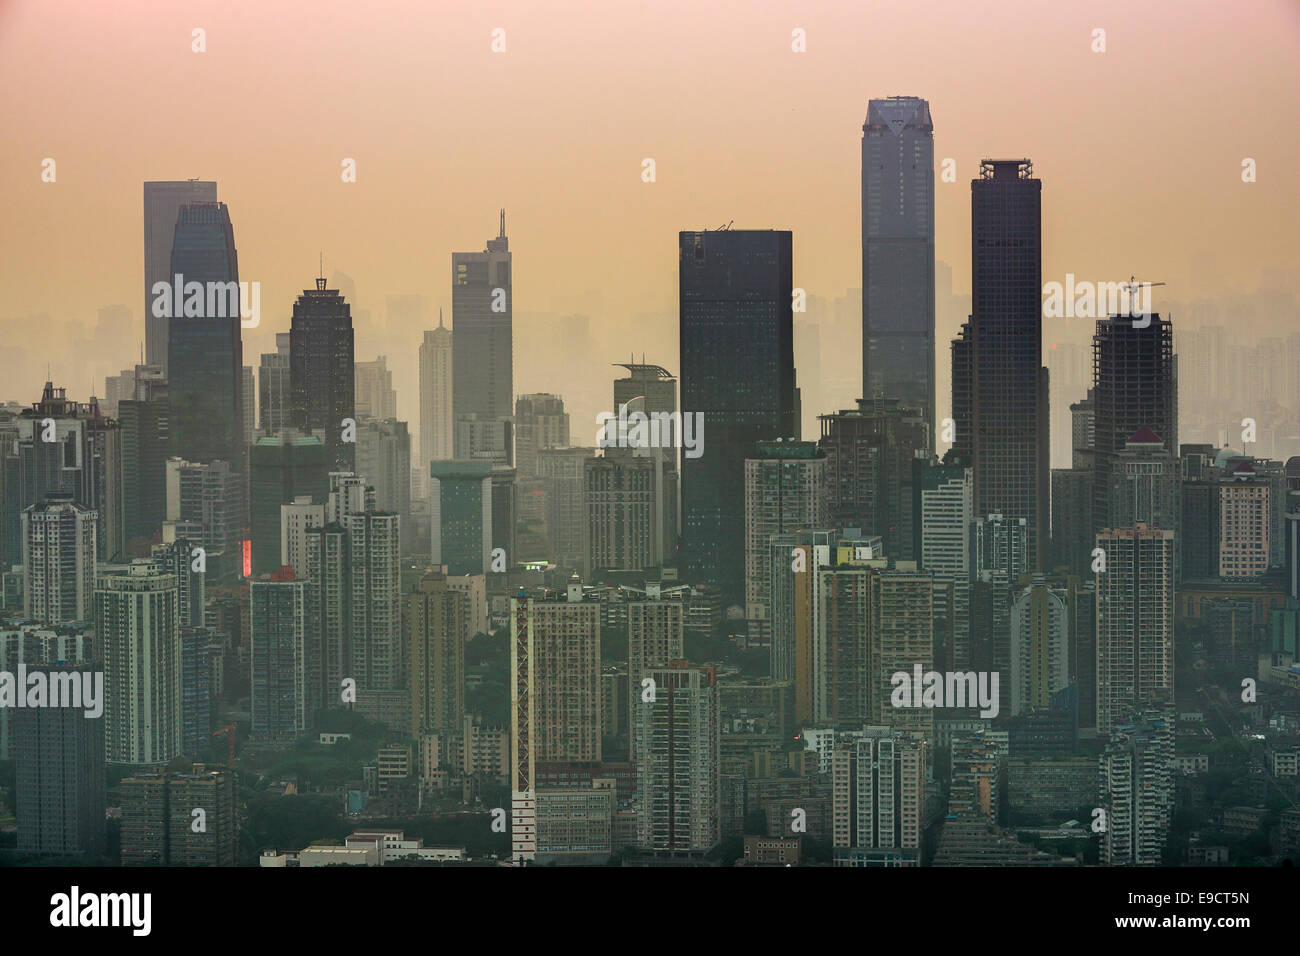 Chongqing, China city skyline. - Stock Image